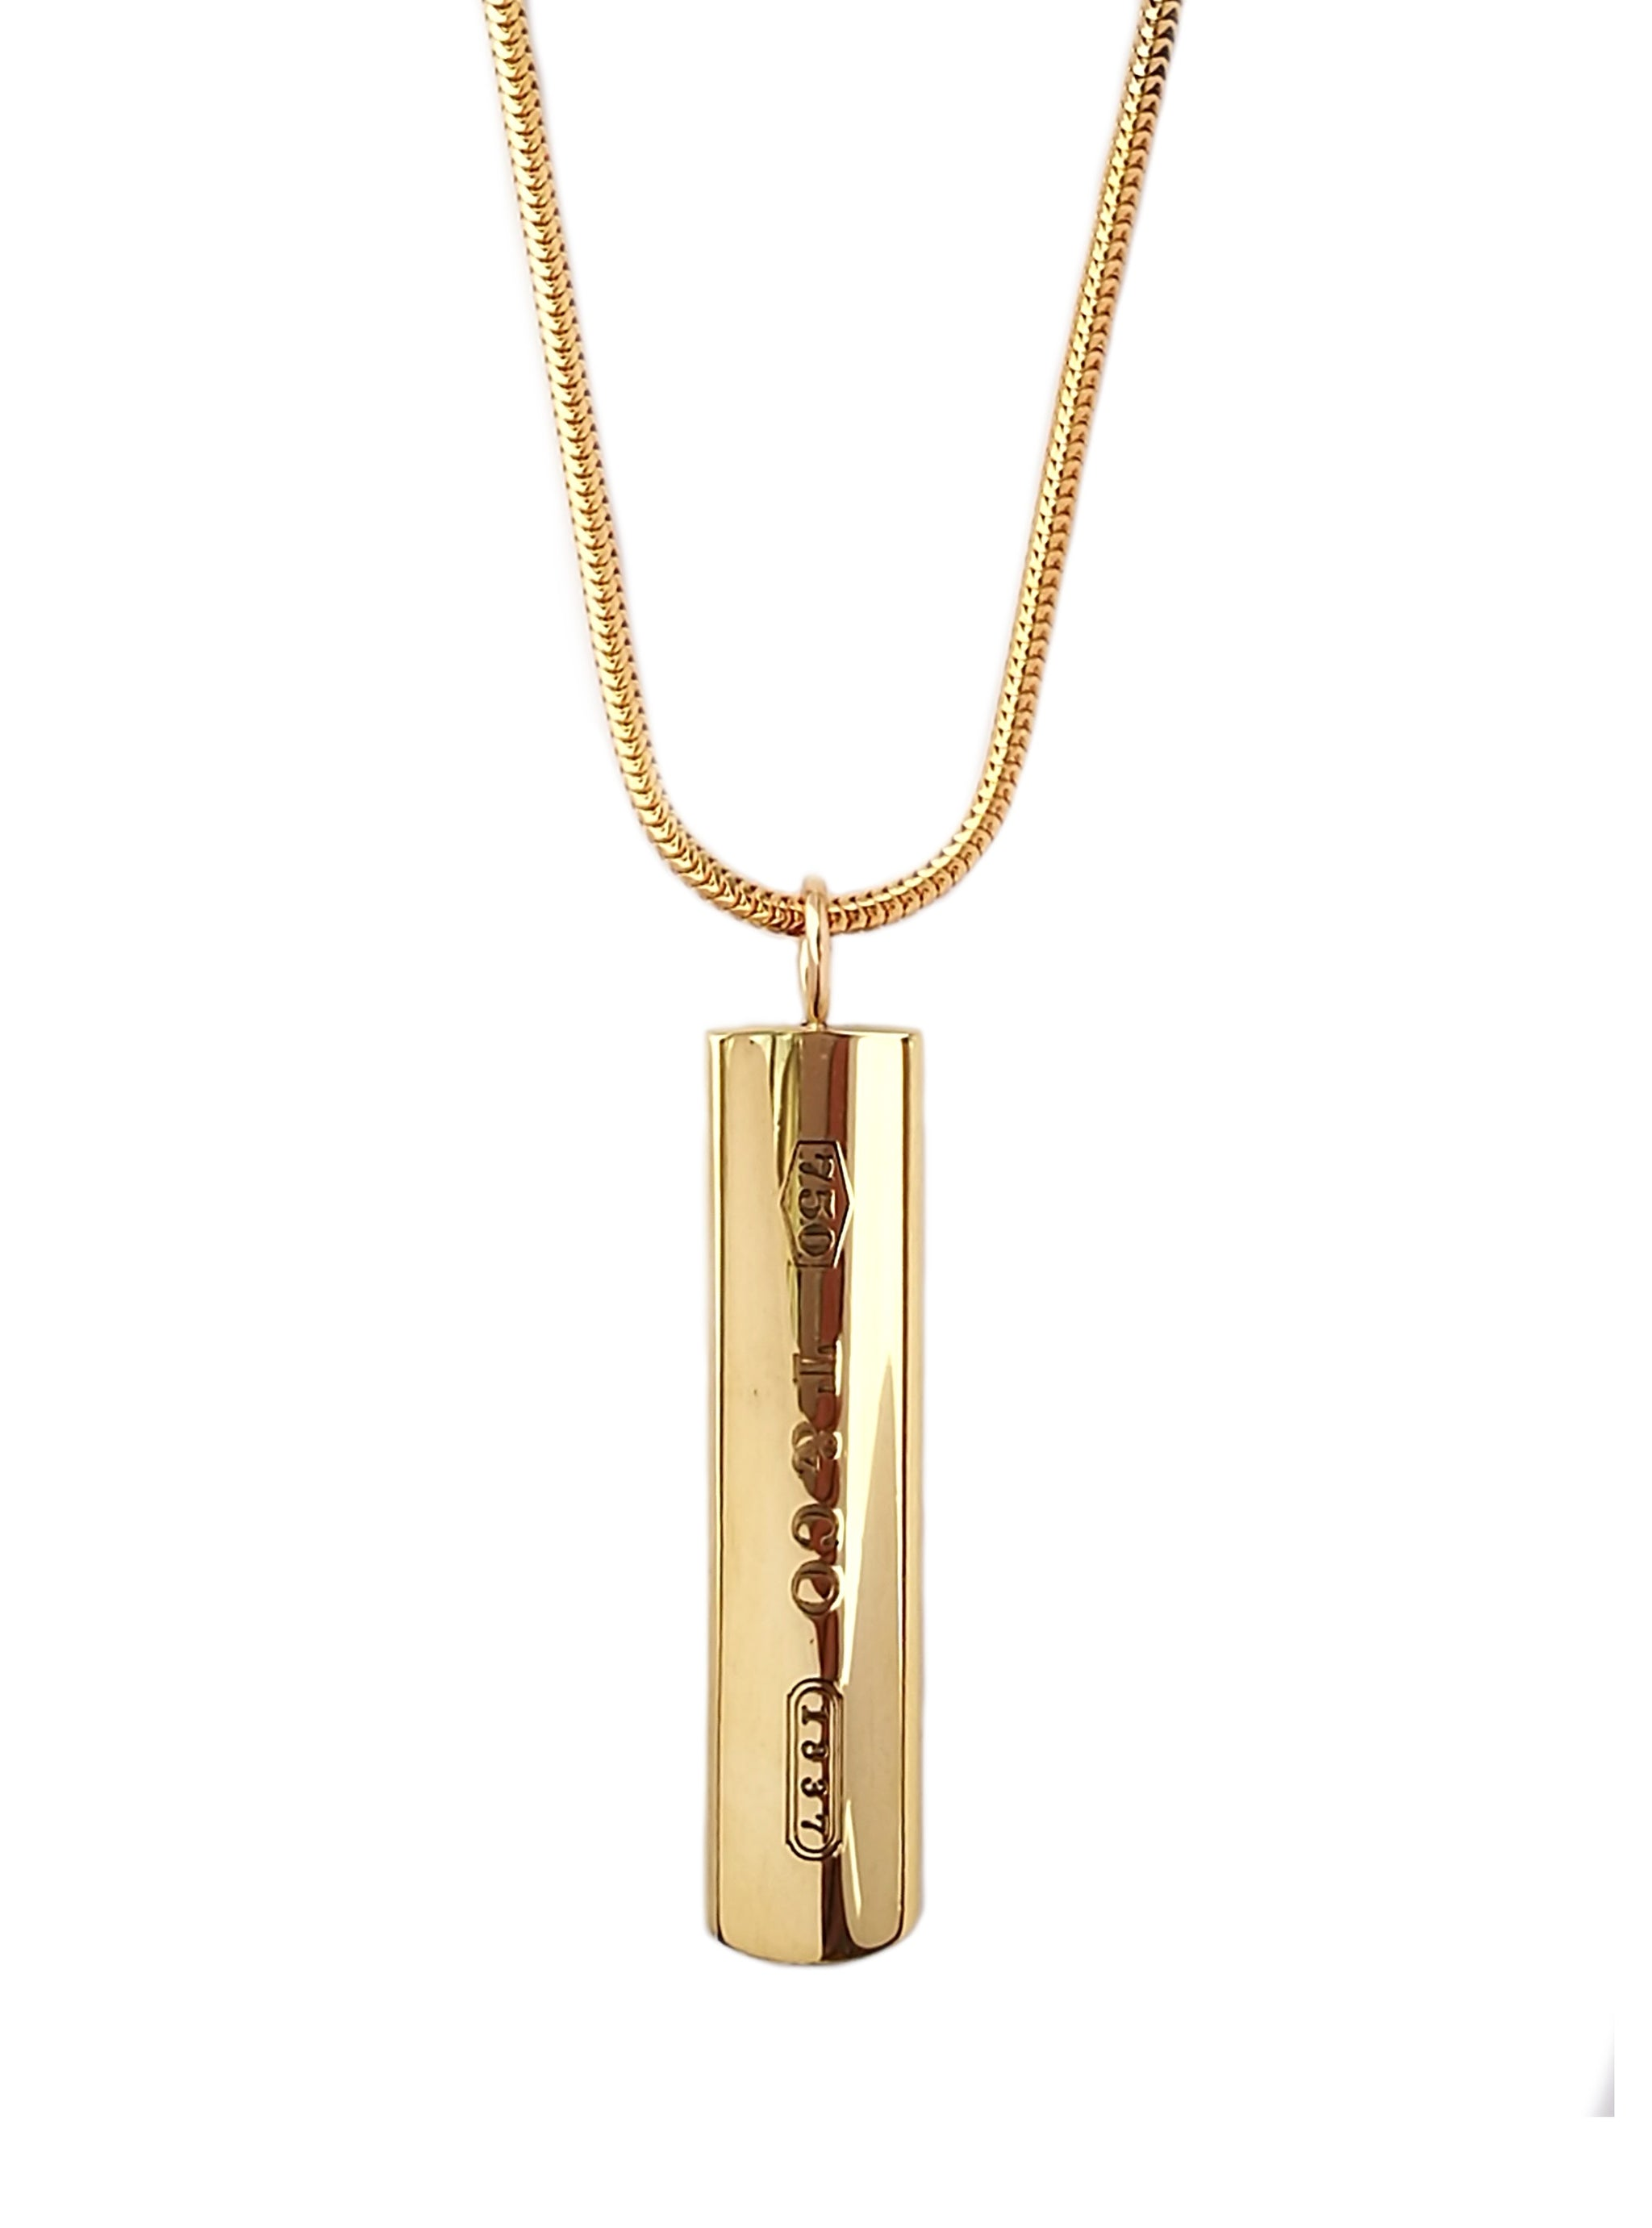 Tiffany & Co 1837 18k Yellow Gold Pendant Necklace 18in